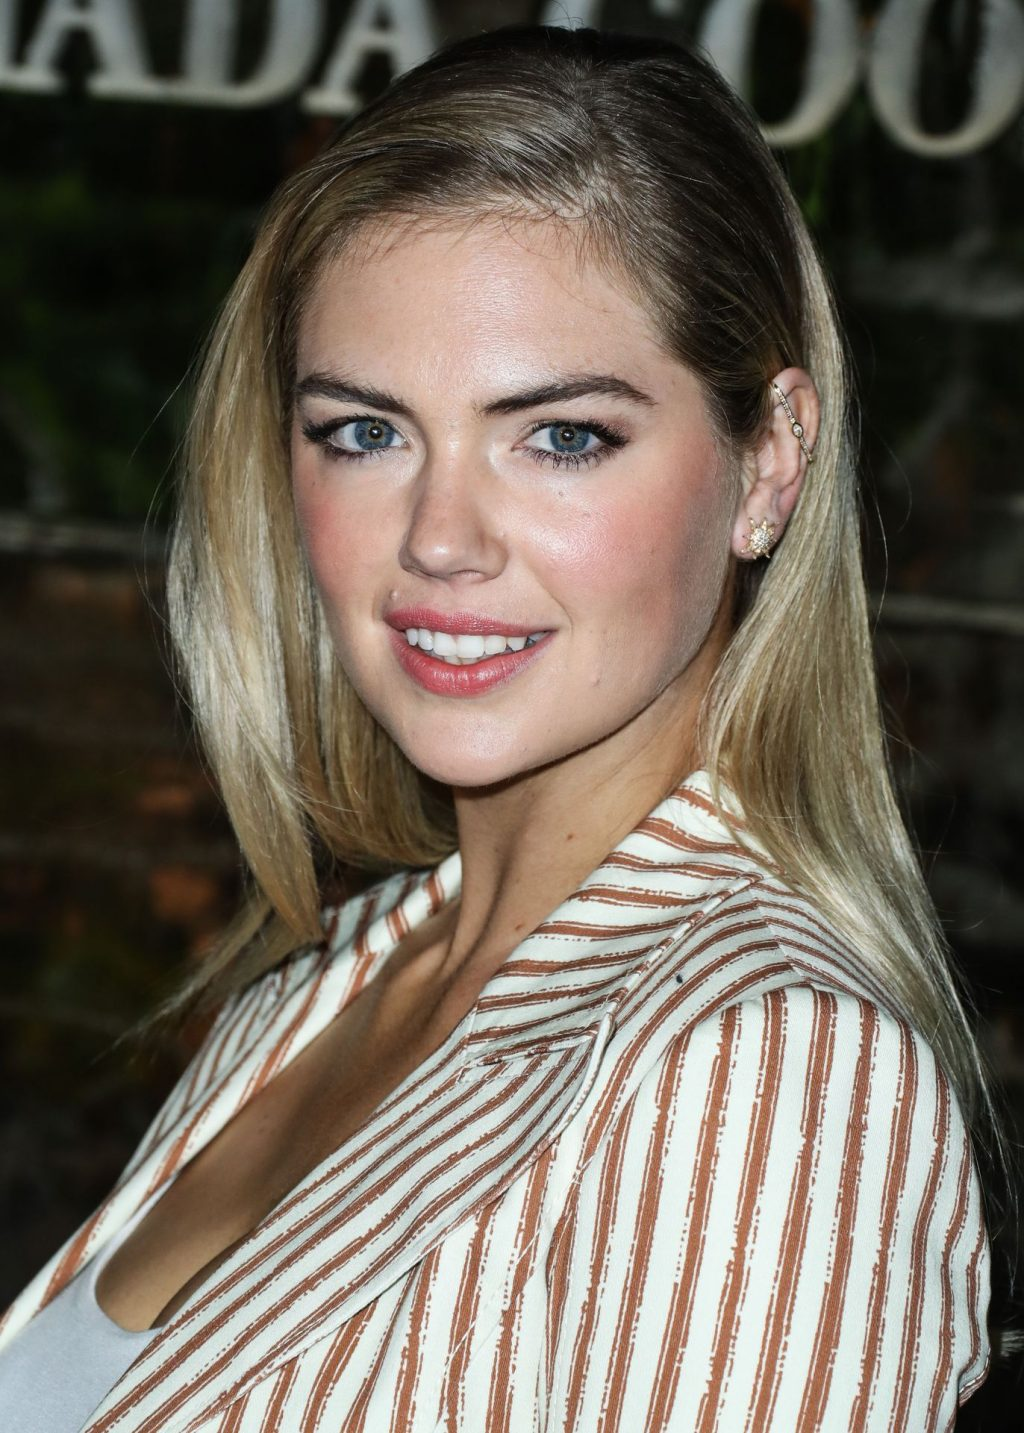 Kate Upton Sexy The Fappening Blog 74 1024x1433 - Kate Upton Attends Canada Goose And Vogue Cocktails & Conversations (104 Photos)